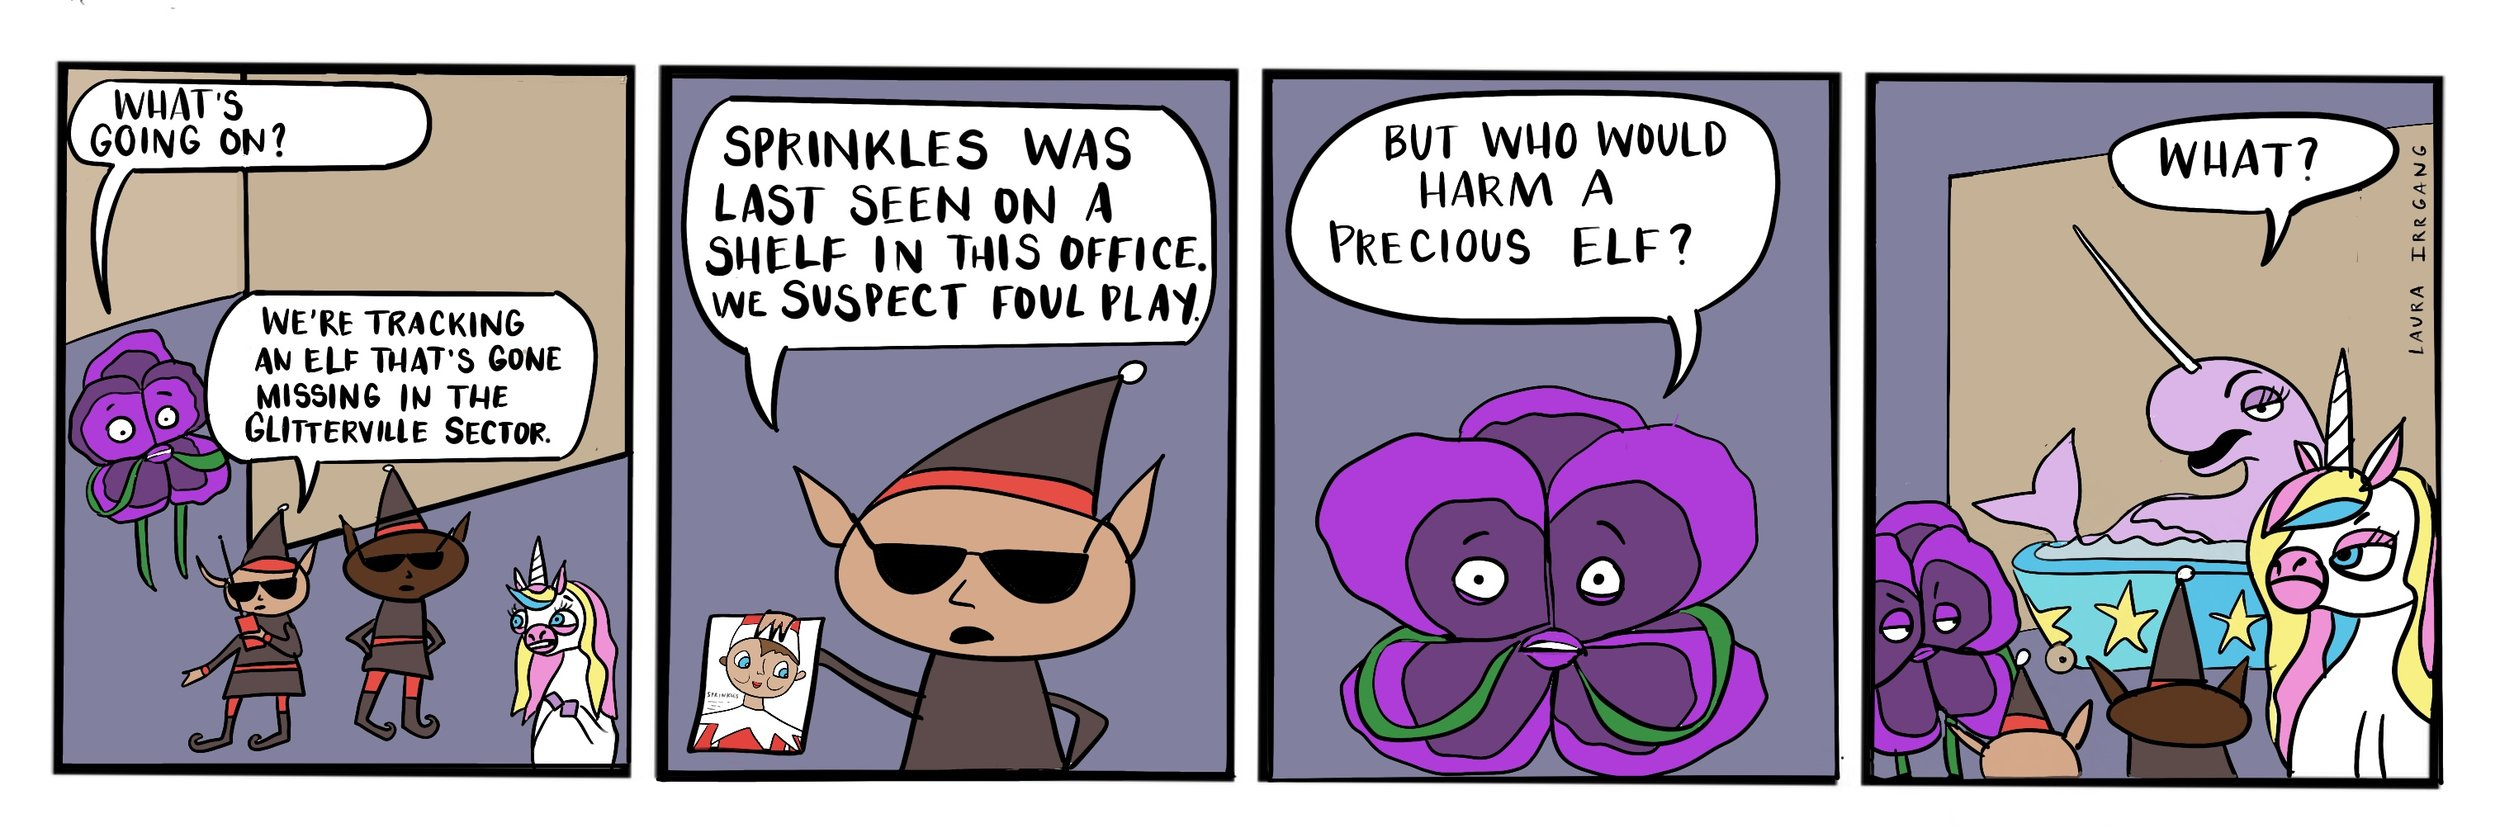 Glitterville Comic-January 1, 2019 horizontal.jpg